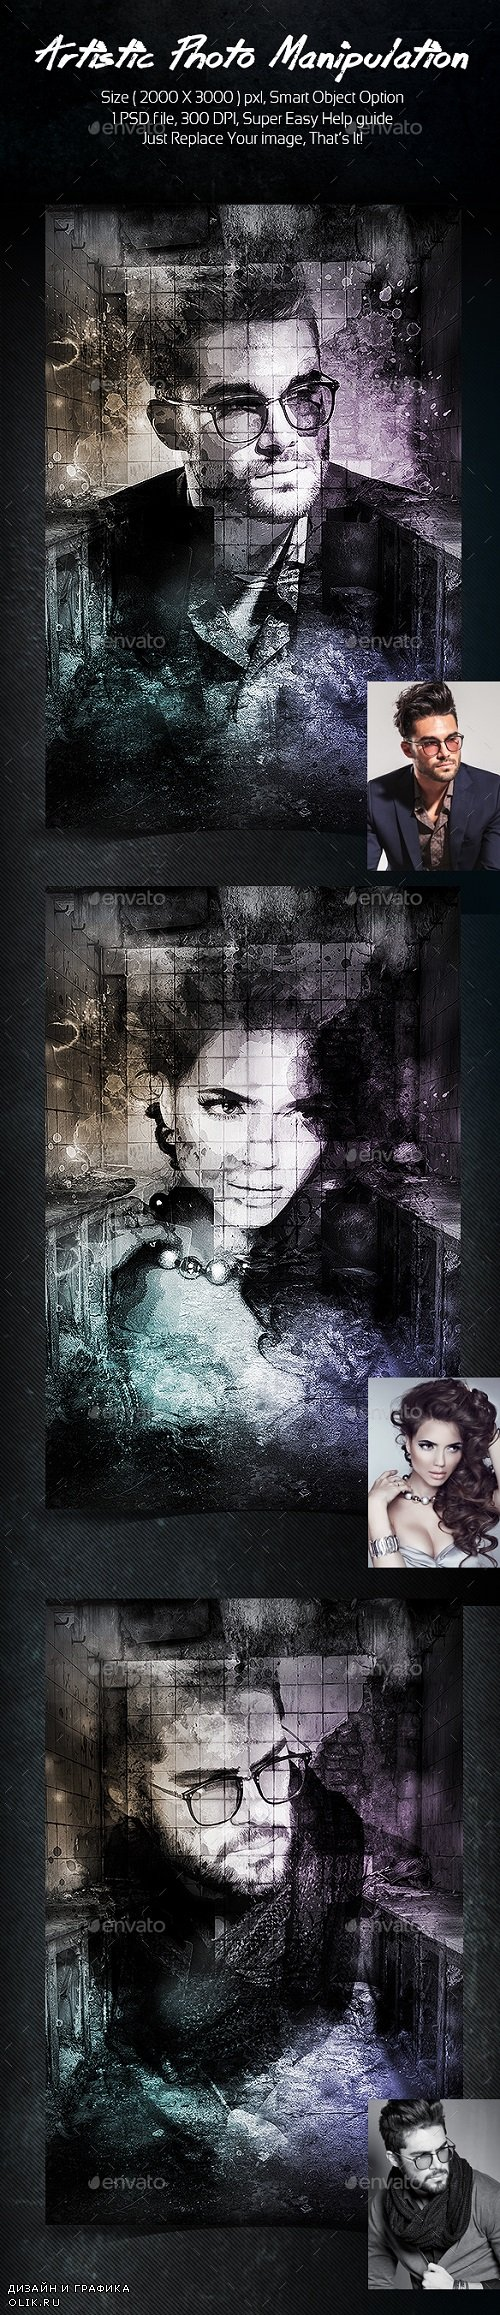 Artistic Photo Manipulation Template 20021215